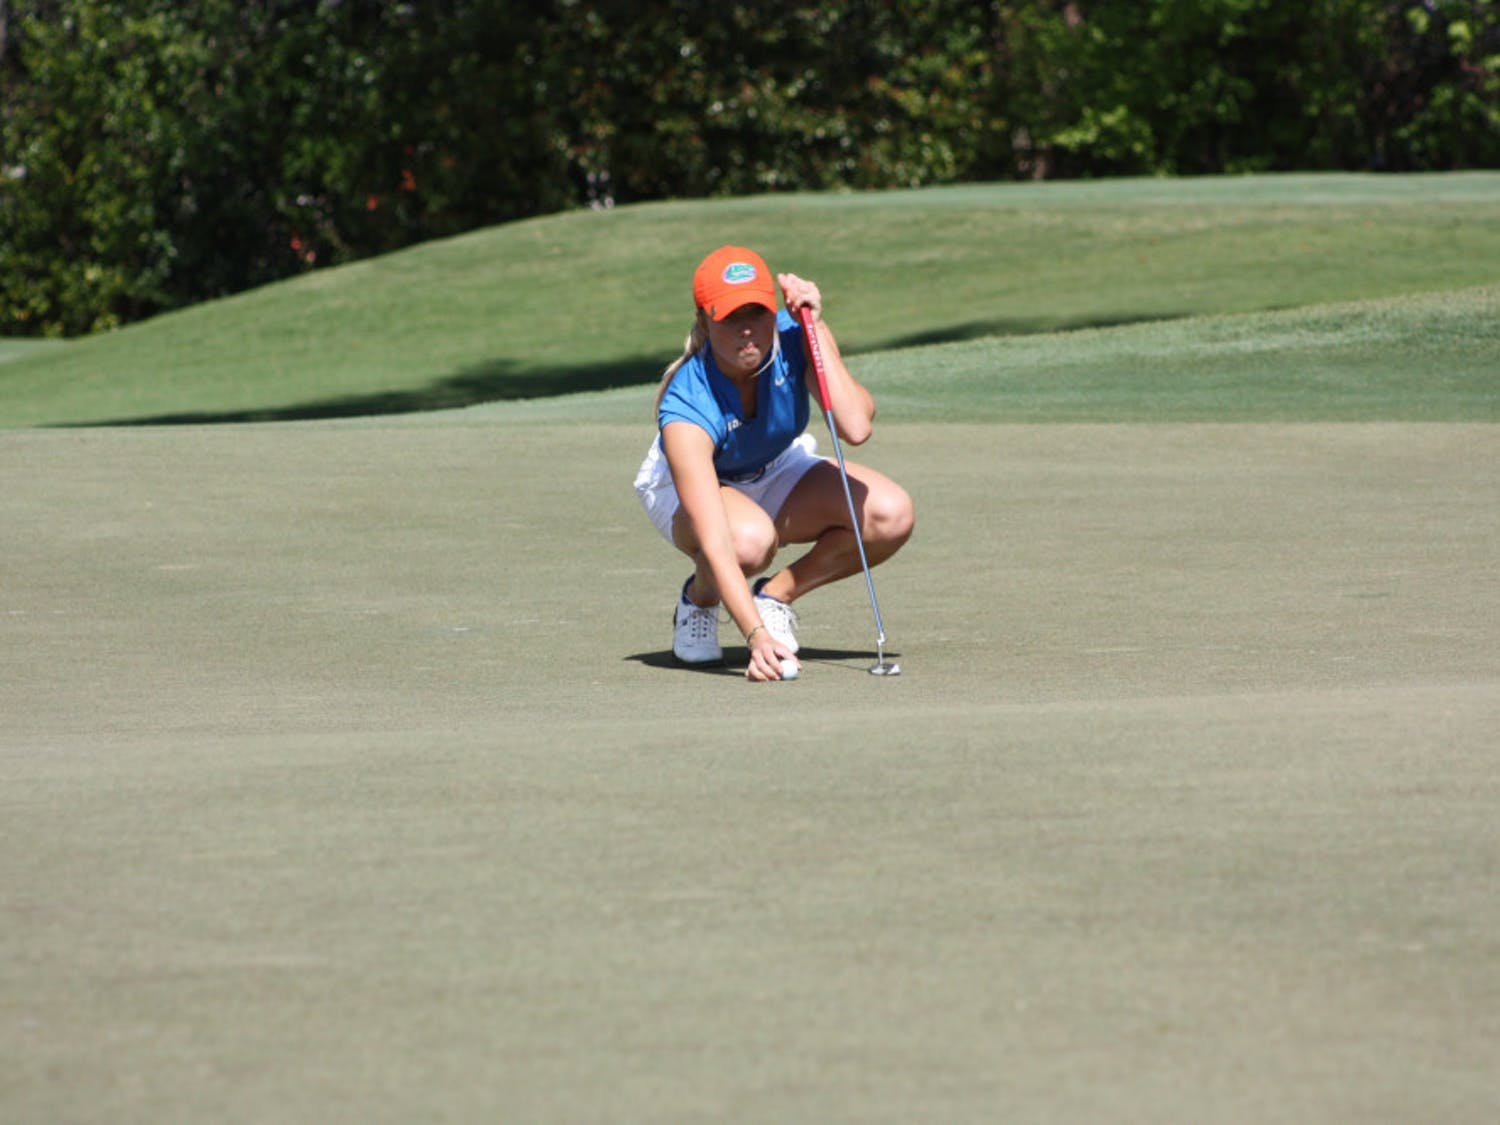 Sierra Brooks won her match over Ole Miss' Ellen Hutchinson-Key 5 and 3 at the SEC Women's Golf Championship on Saturday. She never trailed in the match.